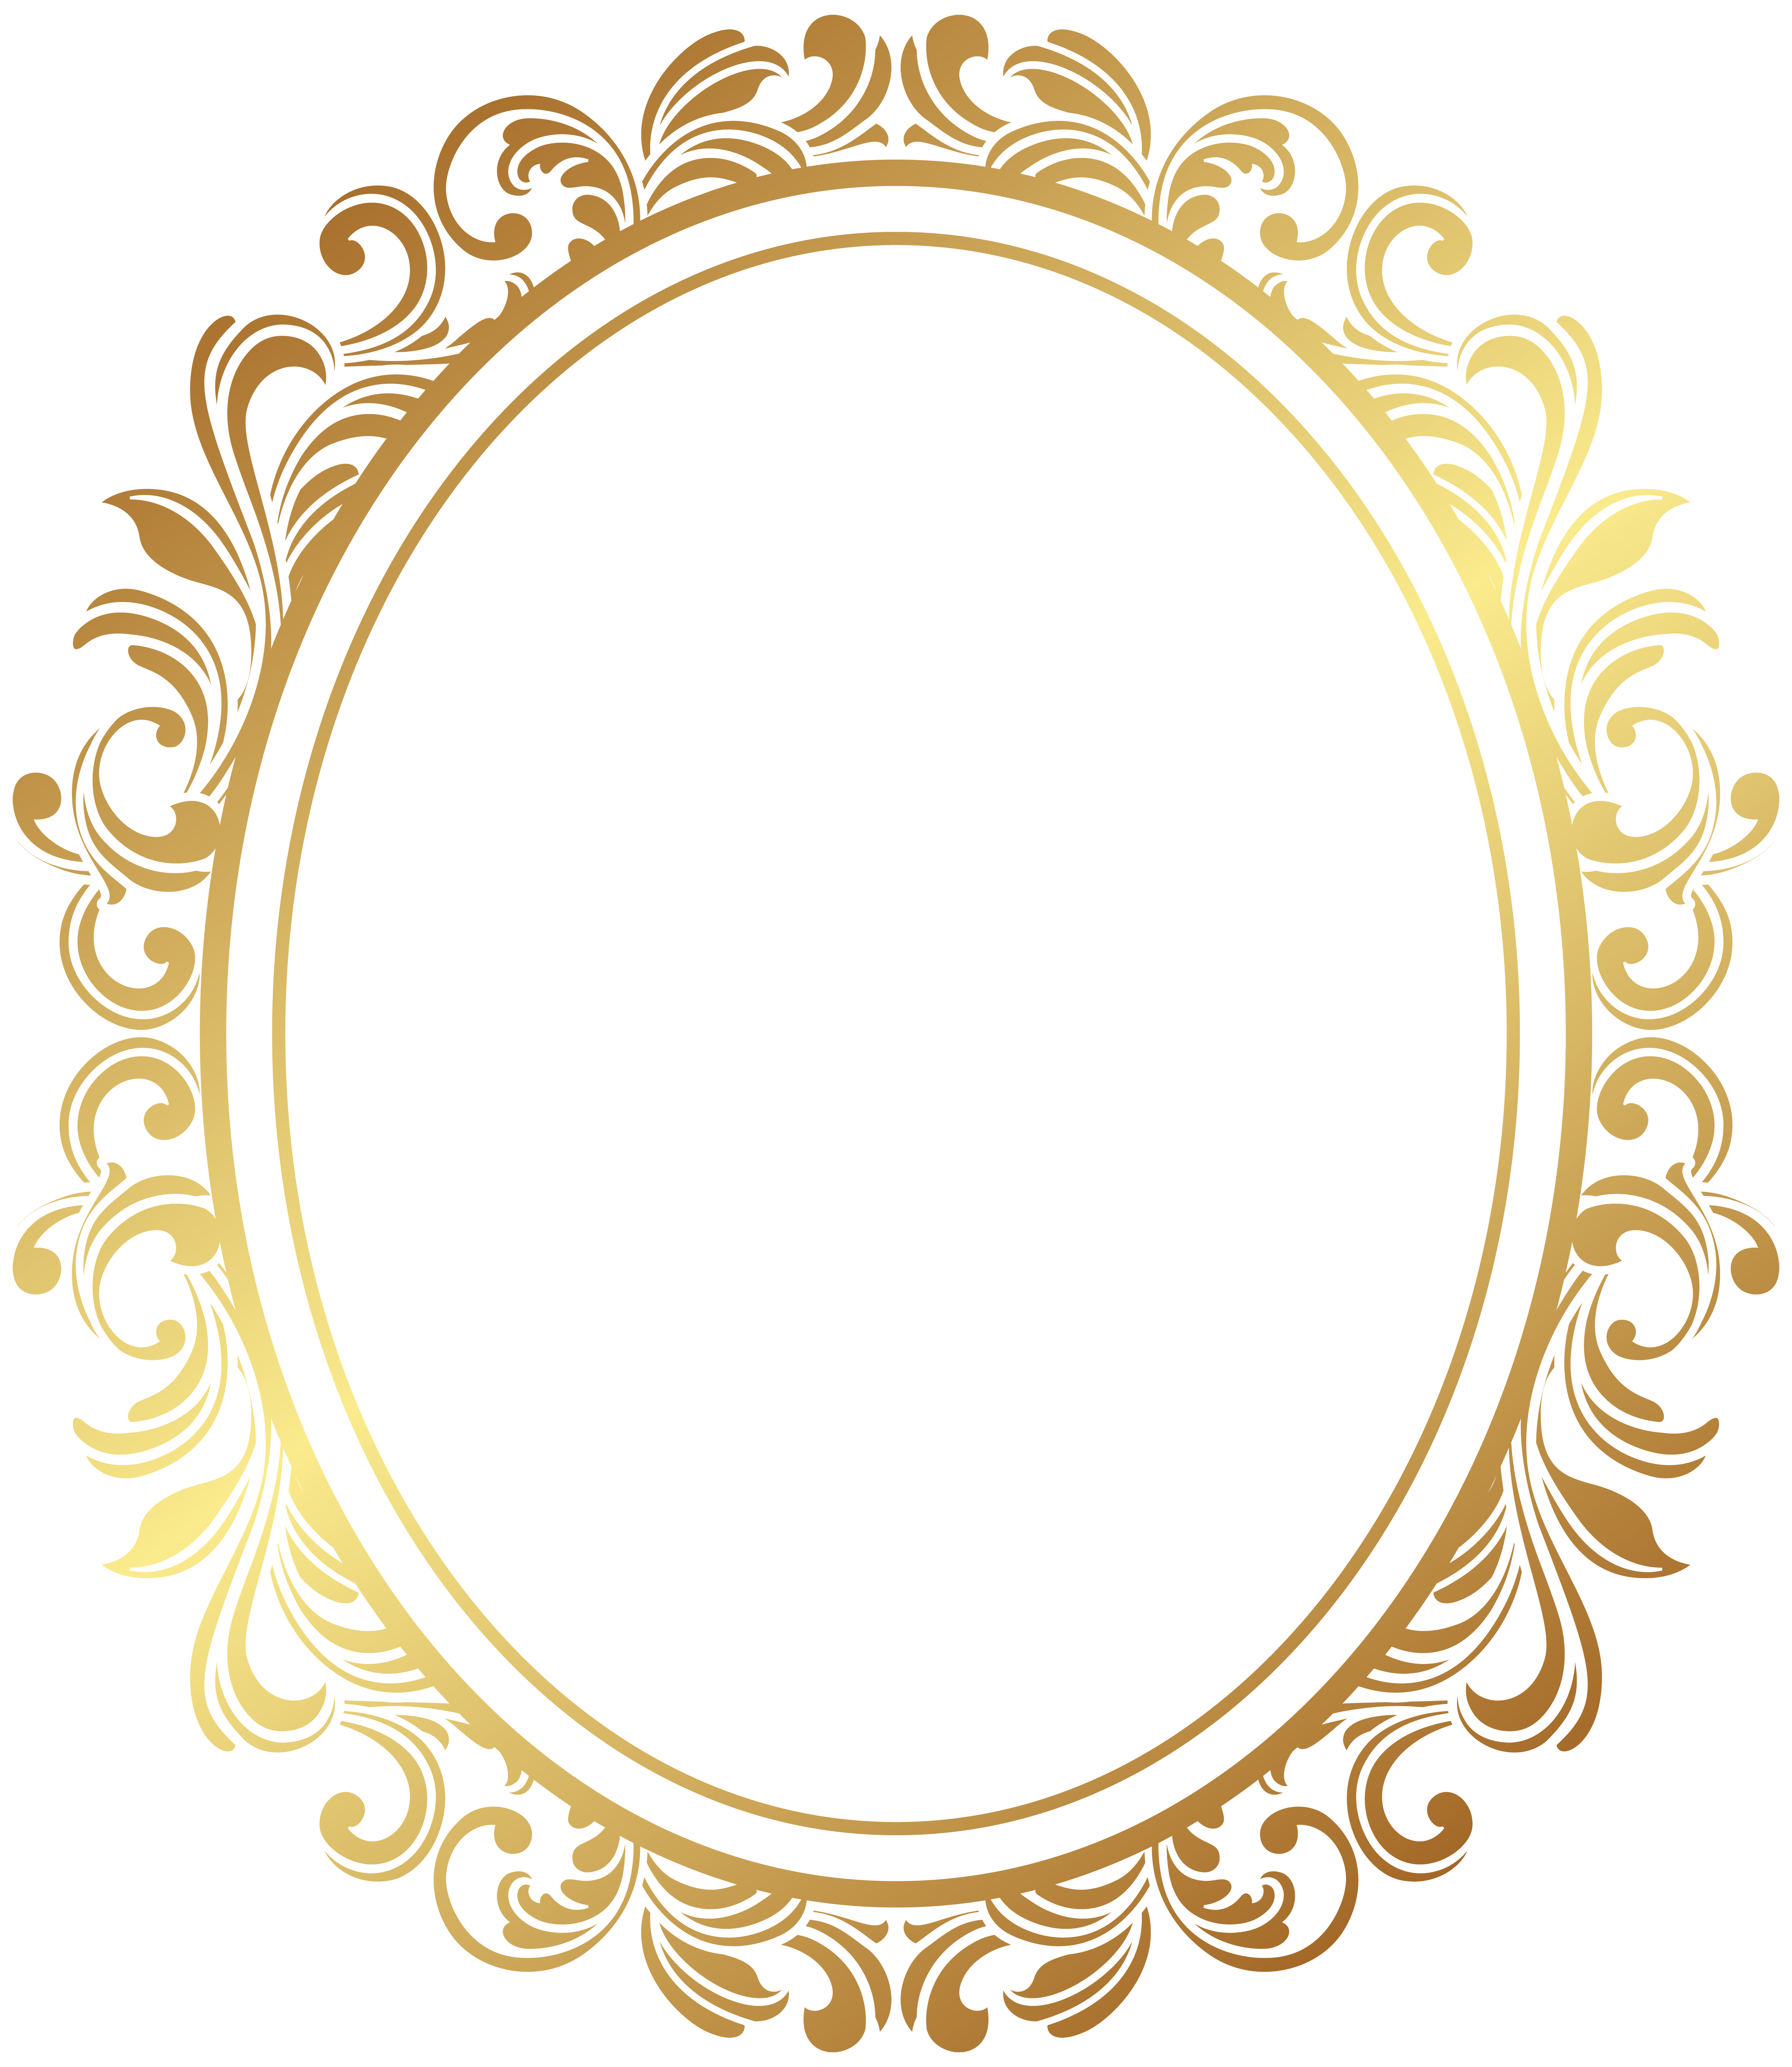 Oval frame png. Picture border deco clip